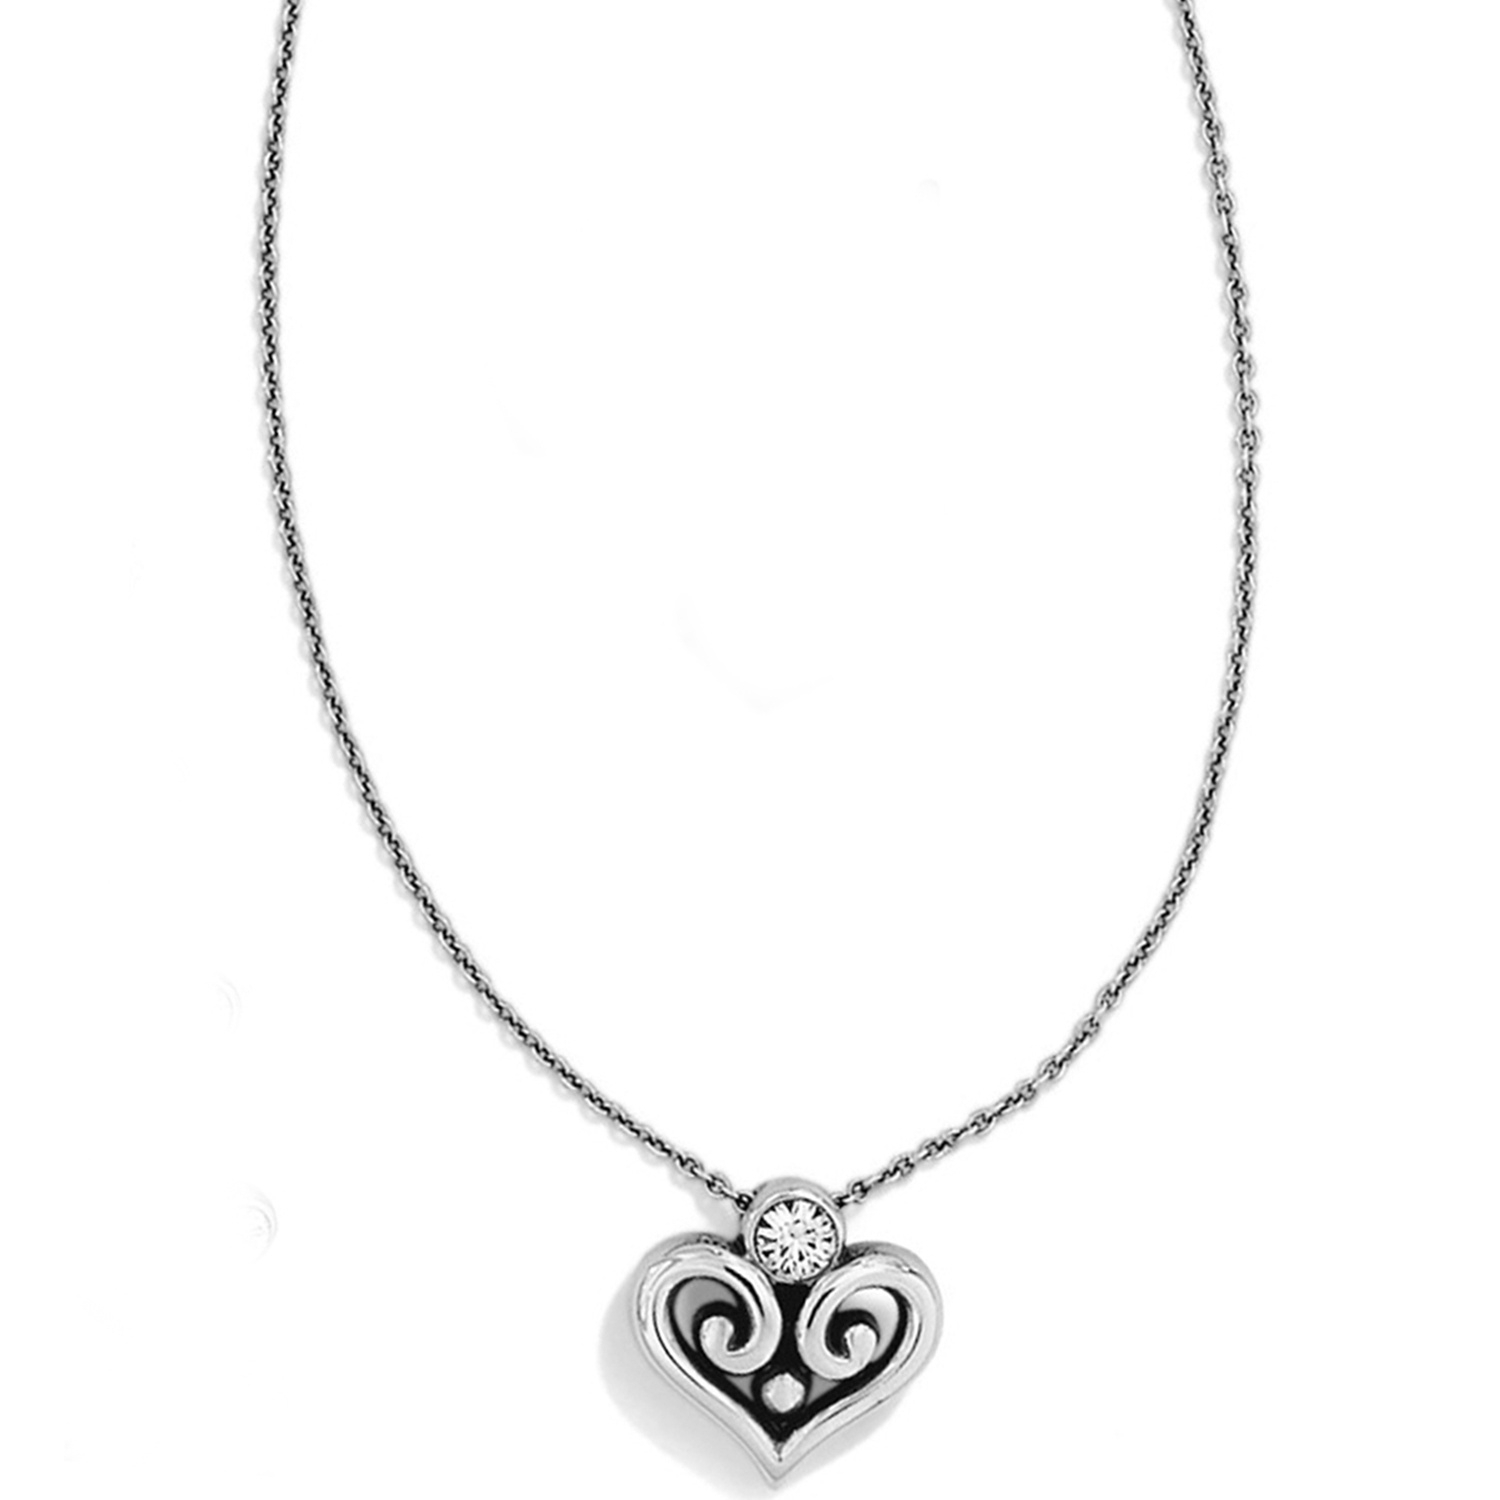 Alcazar Heart Necklace For Newest Joined Hearts Necklaces (View 8 of 25)